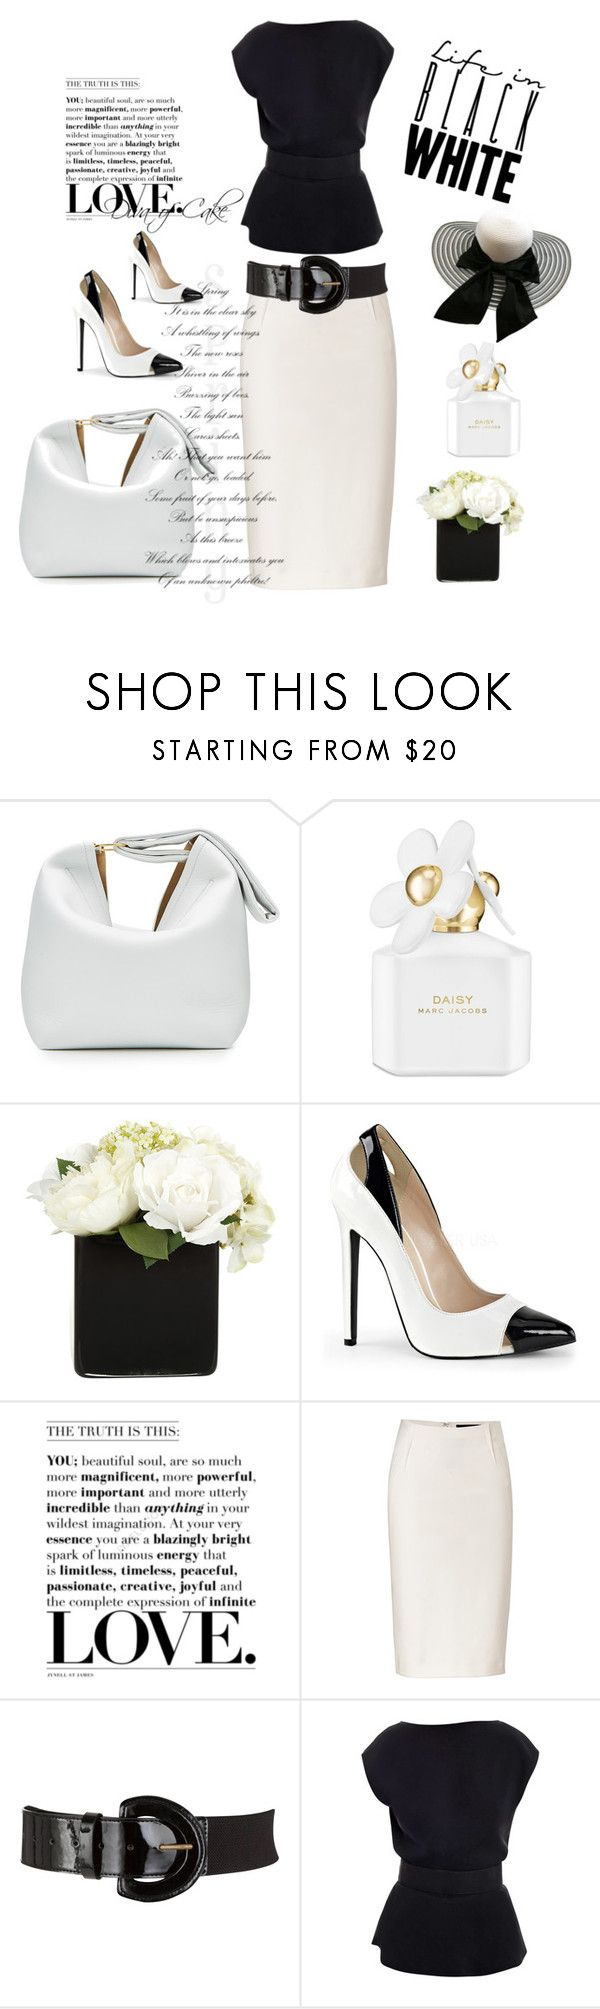 White apron john lewis -  Diva By Kercey Liked On Polyvore Featuring Victoria Beckham Marc Jacobs